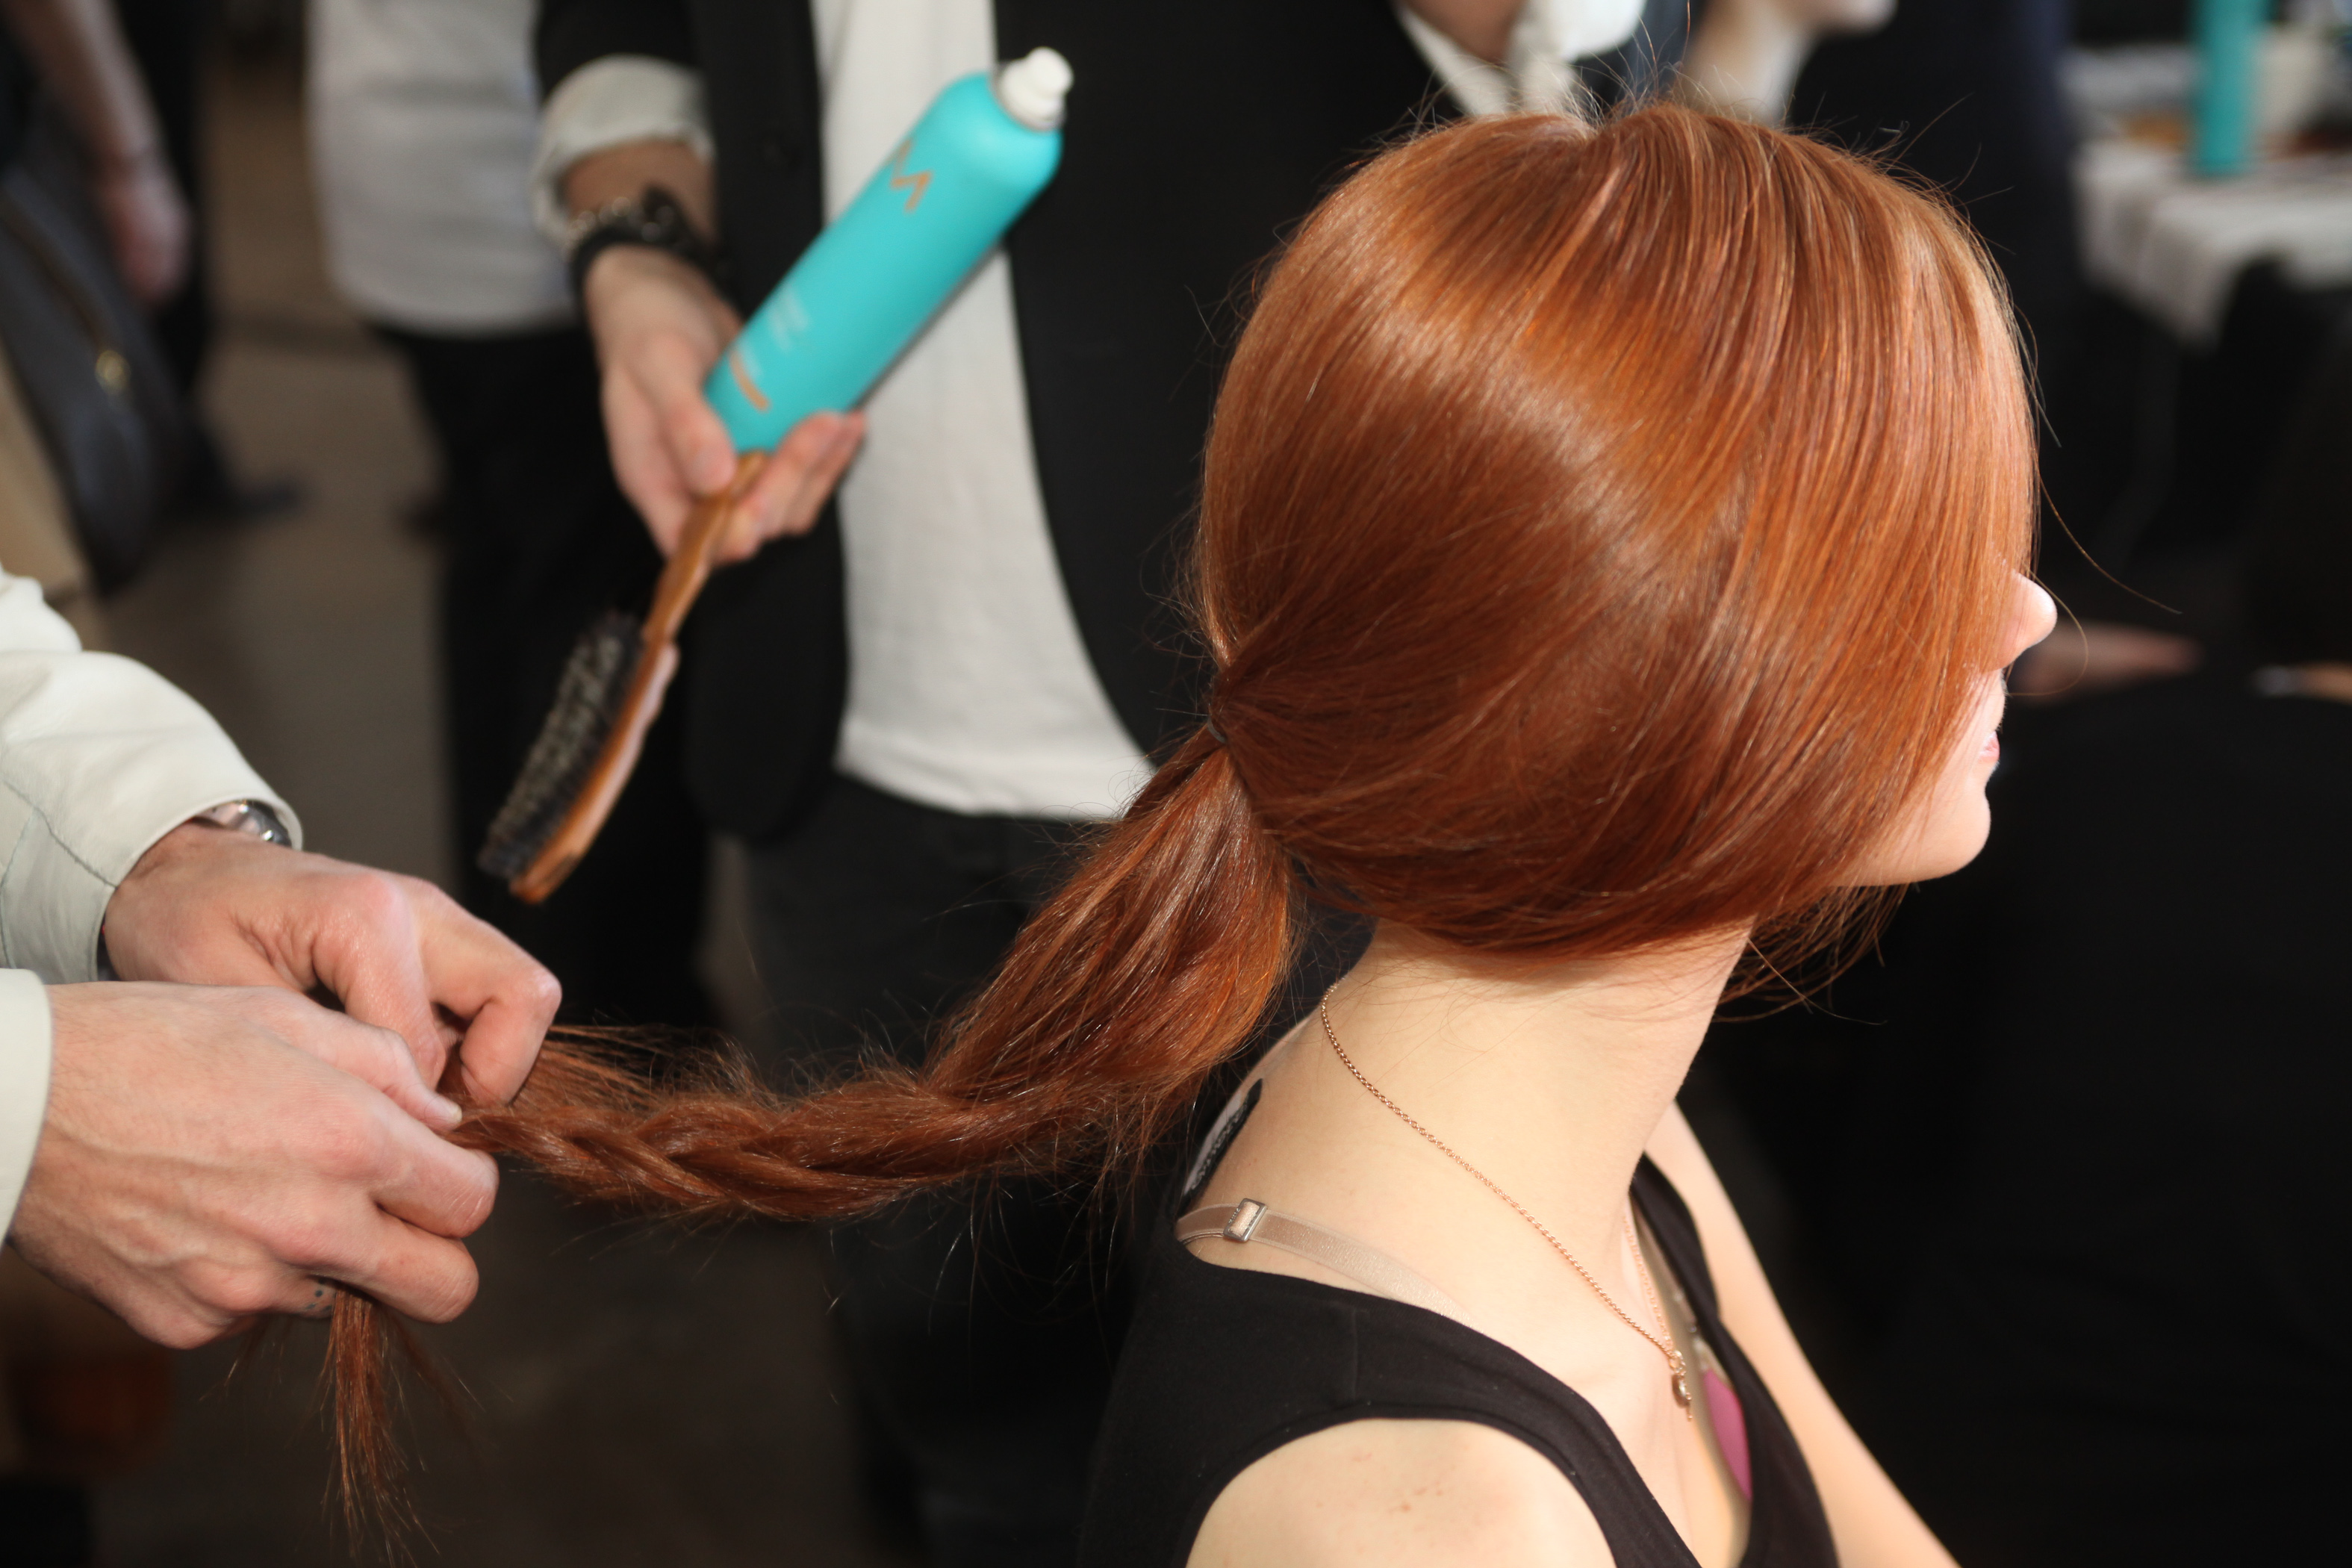 Fall/Winter 2013 Hair Looks By Moroccanoil Artistic Director Antonio Corral Calero